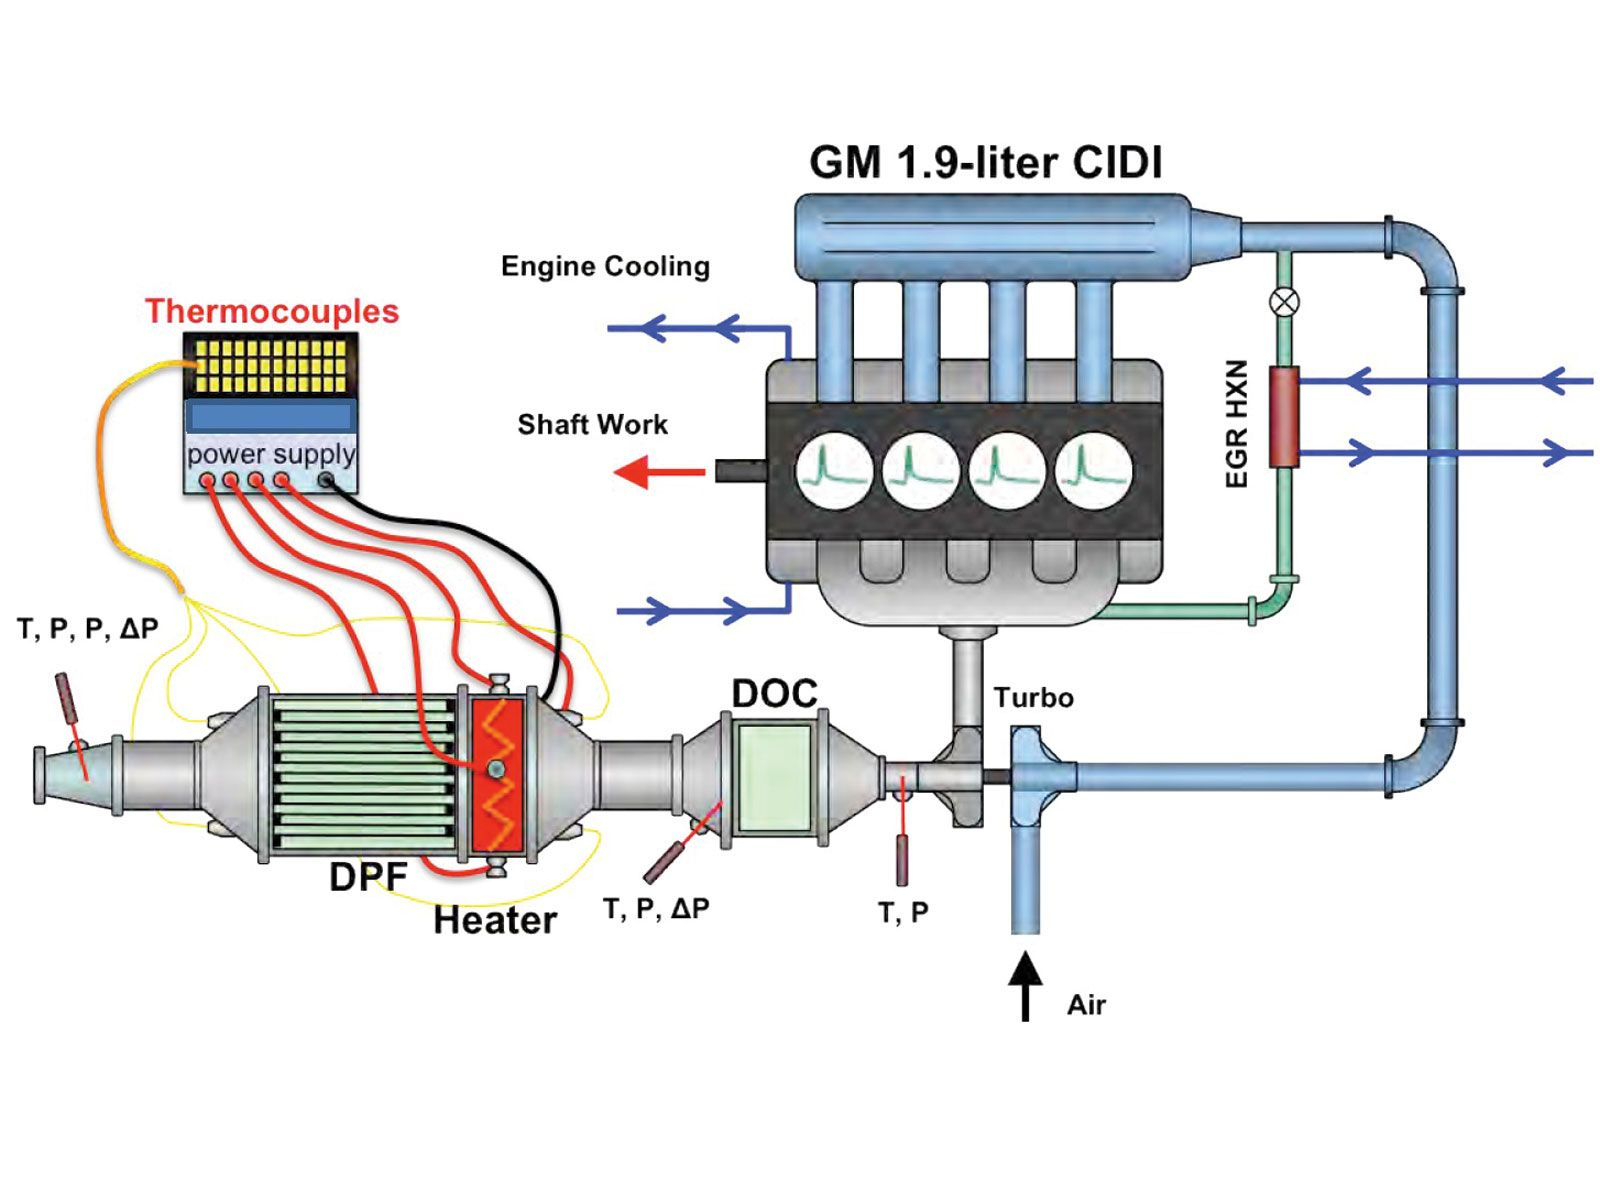 wiring diagram on 3 phase coolant pump with 429812358162877024 on Air Conditioner Switches moreover Story Of Hazrat Nuh Nooh Pbuh furthermore 429812358162877024 also Fuse Box Diagram For 54 Plate Astra Diesel besides Showthread.